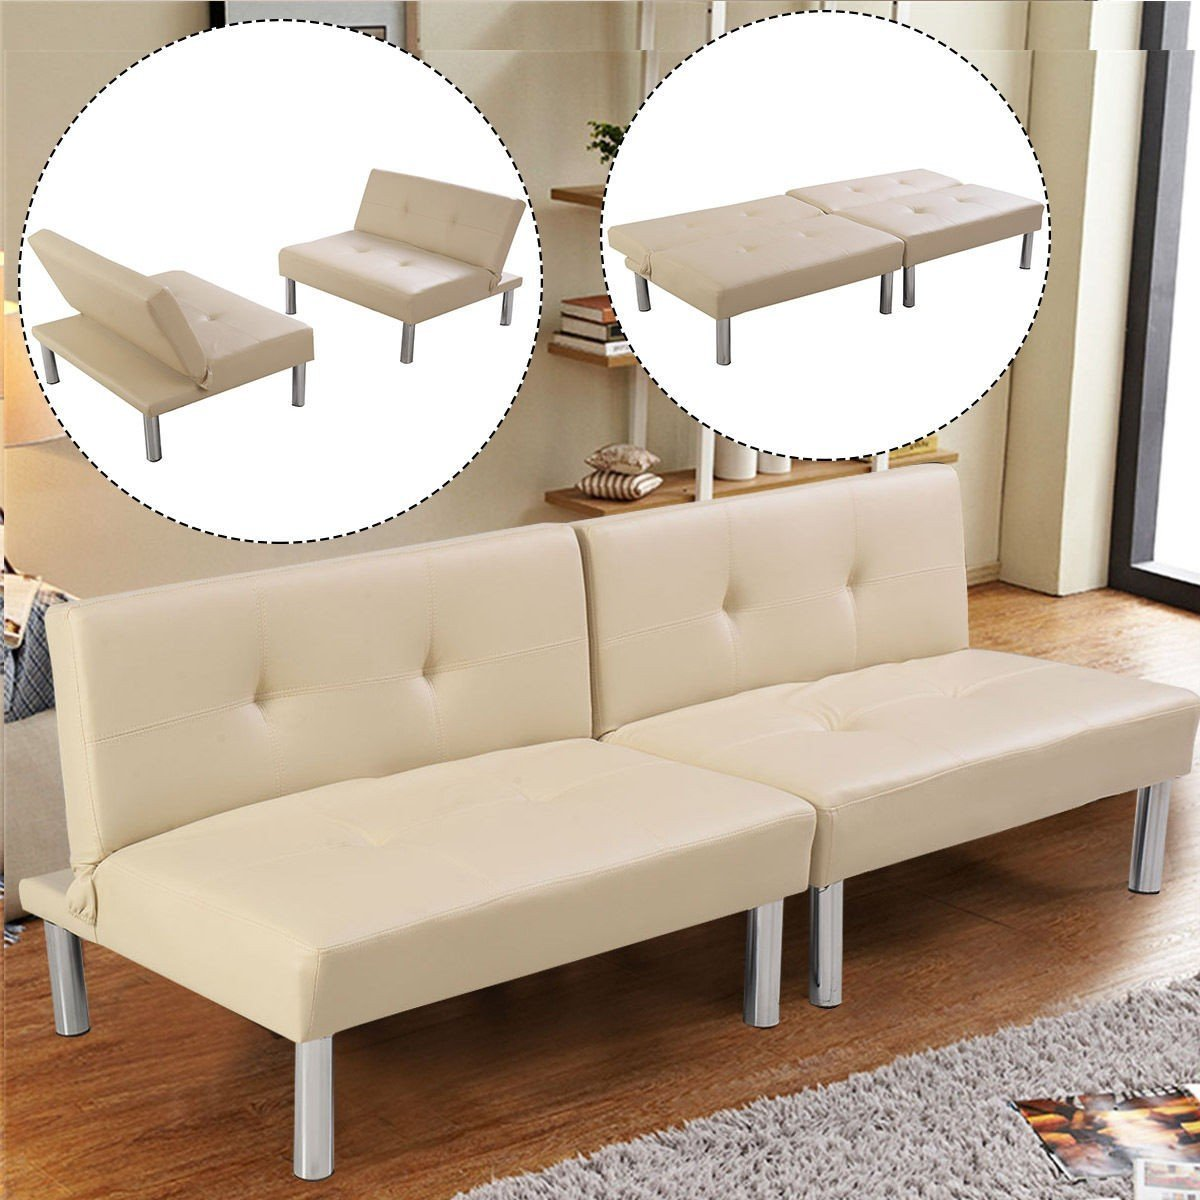 Cheap Pu Living Room Sofa, find Pu Living Room Sofa deals on line at ...